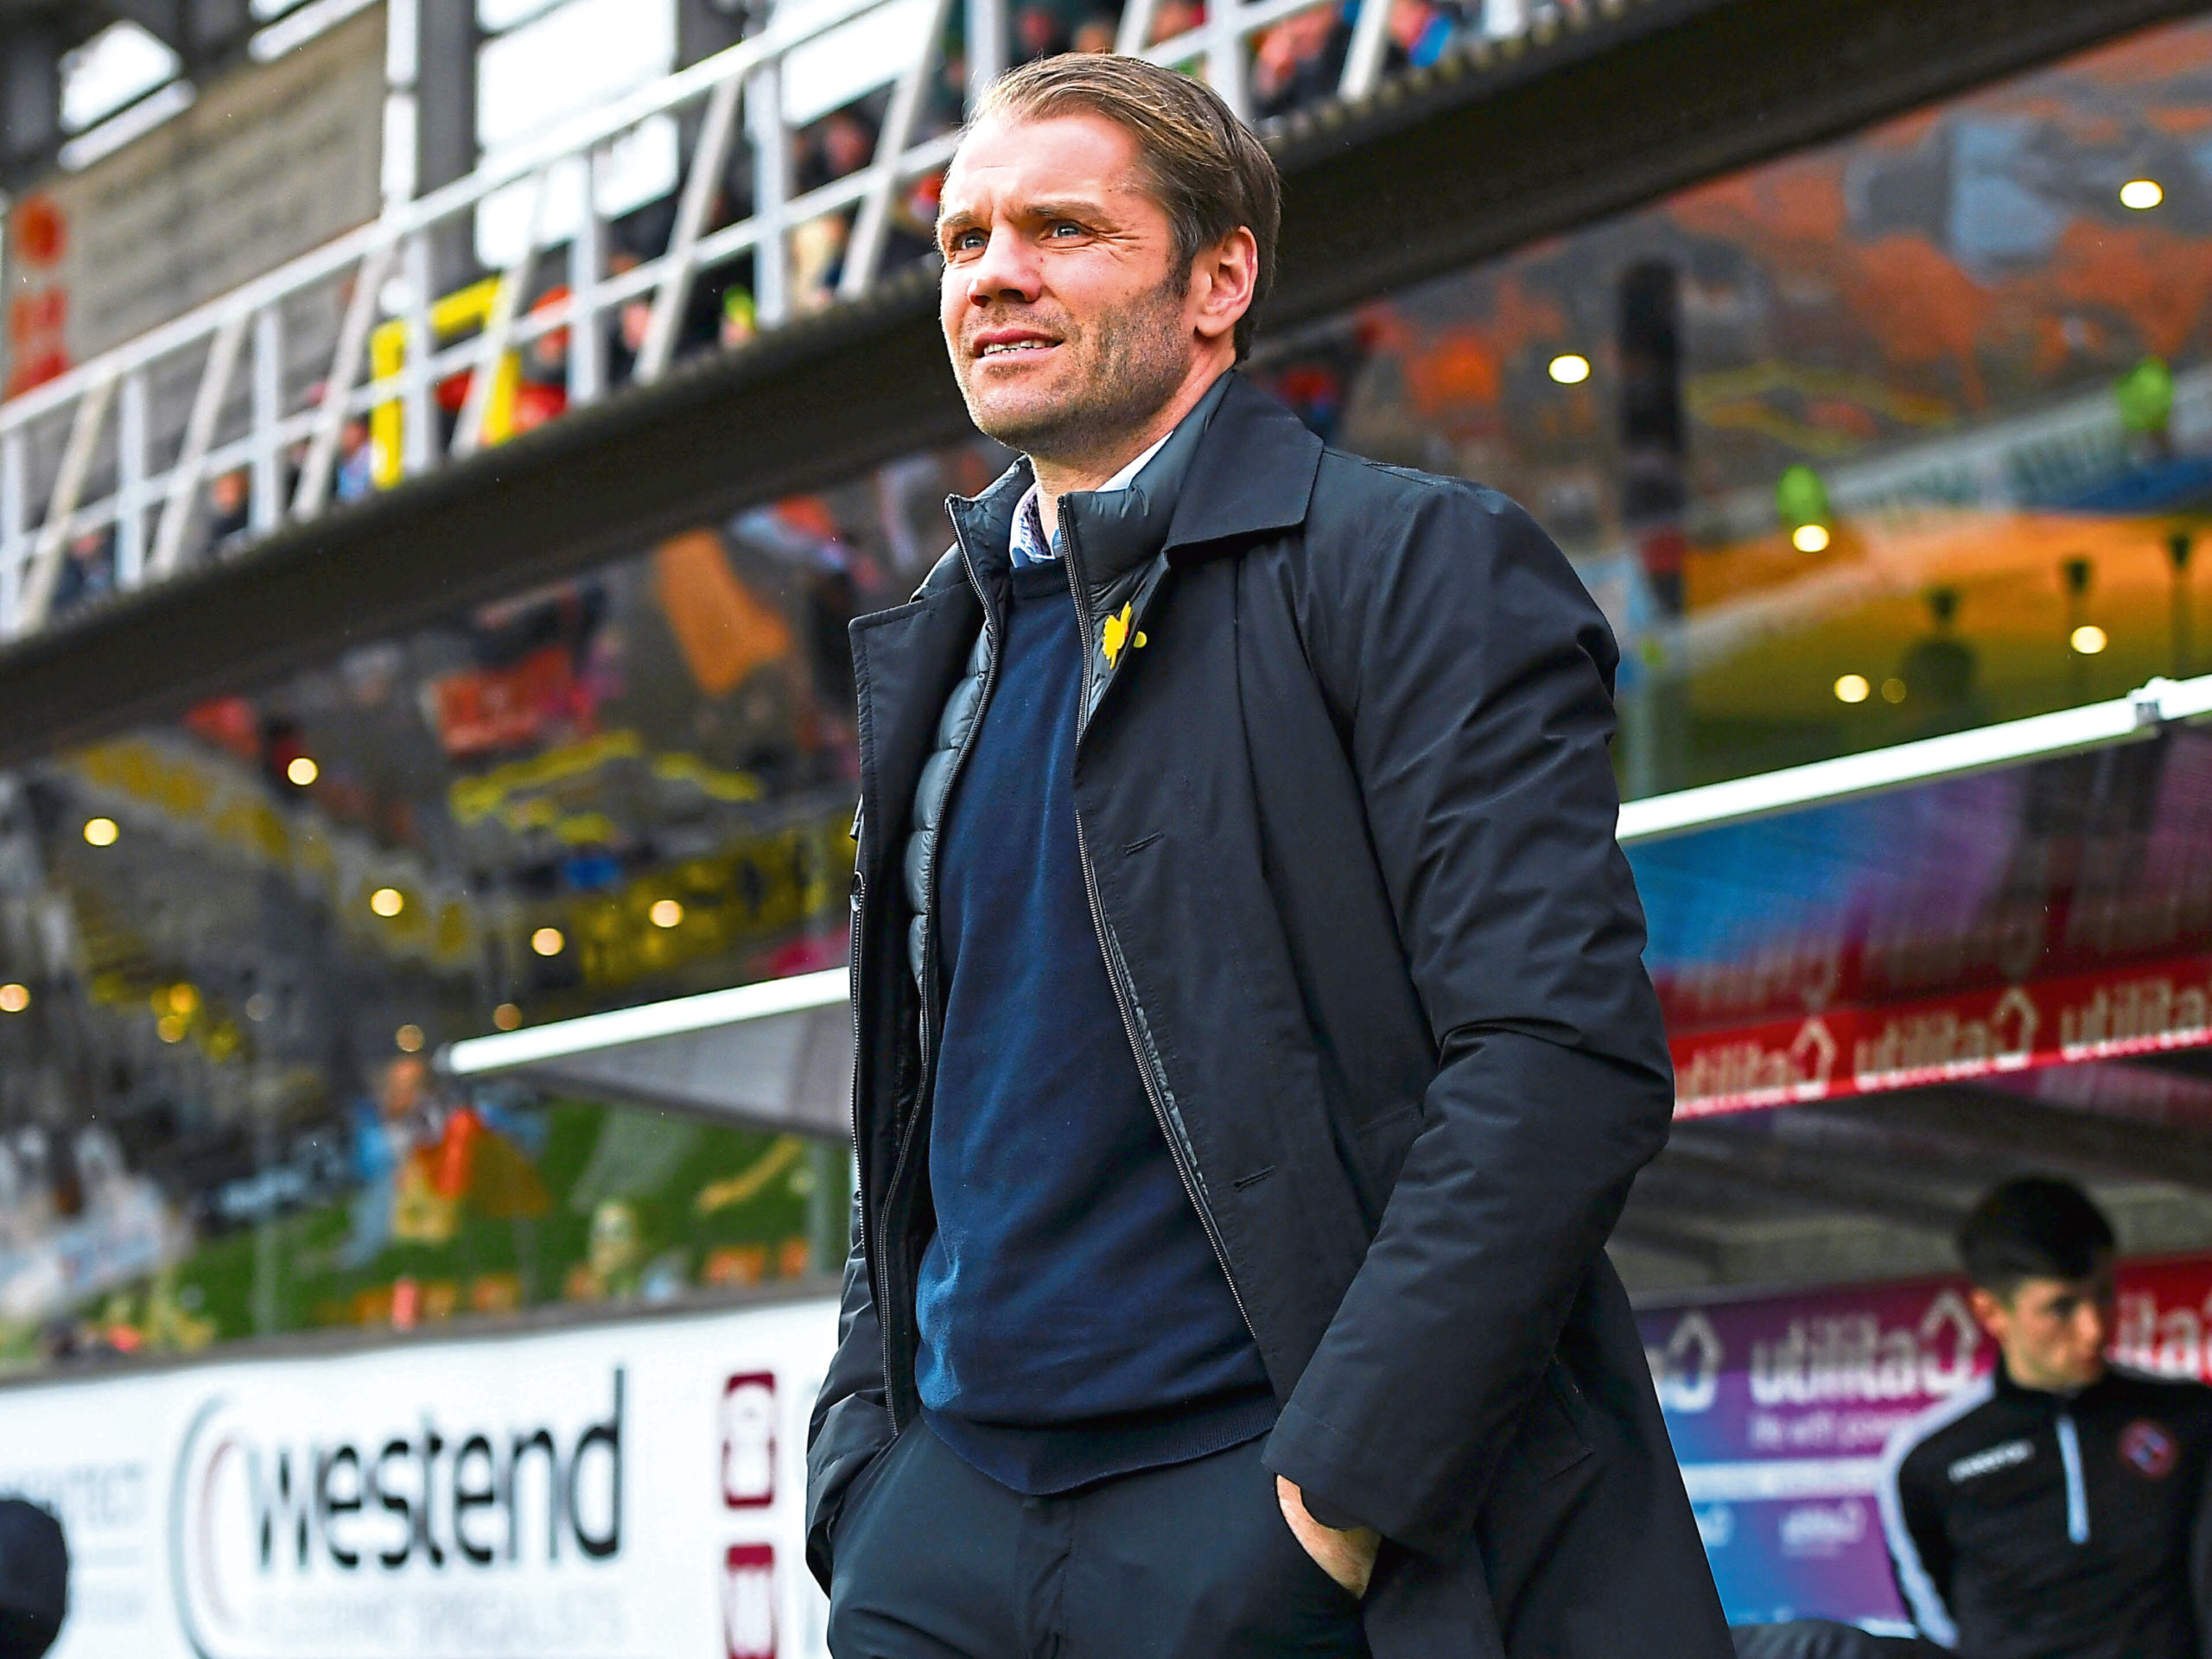 DUNDEE, SCOTLAND - MARCH 07: Dundee Utd manager Robbie Neilson during the Ladbrokes Championship match between Dundee United and Partick Thistle at Tannadice Stadium on March 07, 2020, in Dundee, Scotland. (Photo by Ross MacDonald / SNS Group)